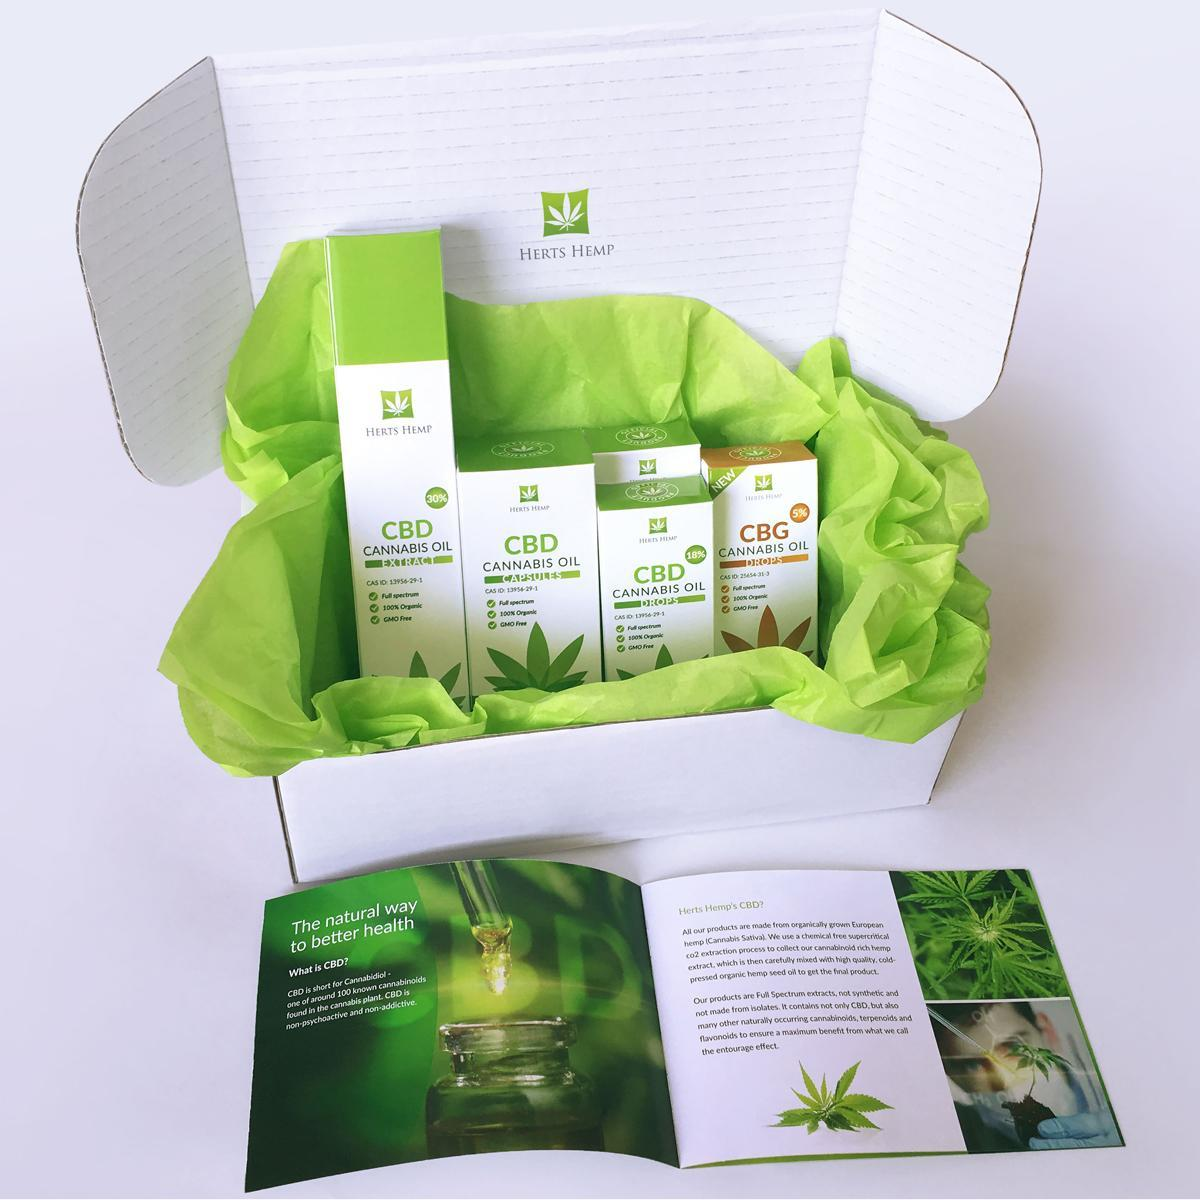 Herts Hemp's Products